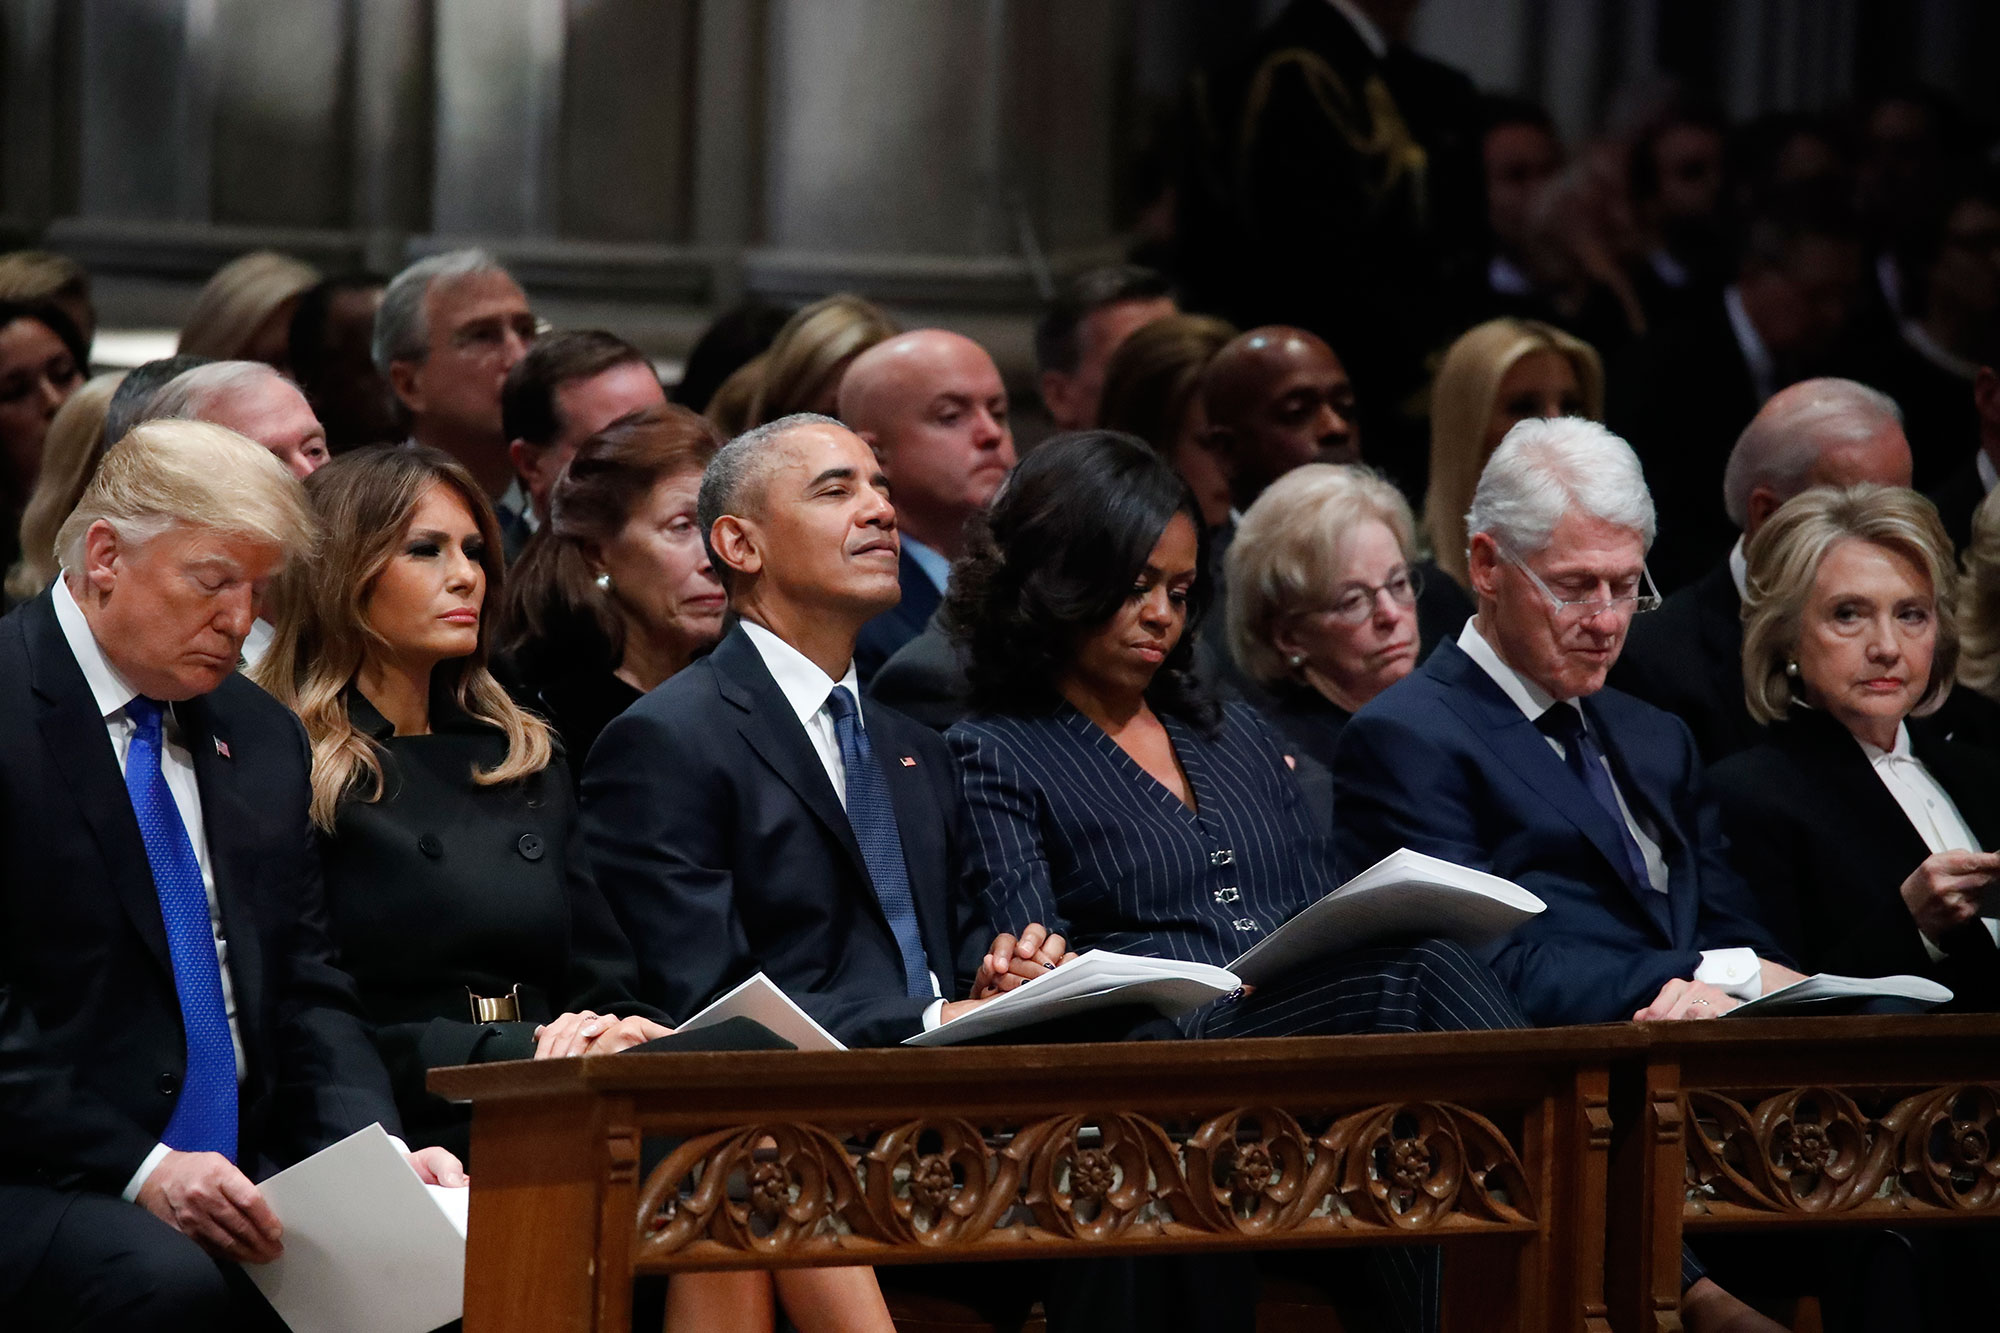 "<div class=""meta image-caption""><div class=""origin-logo origin-image none""><span>none</span></div><span class=""caption-text"">President Donald Trump, first lady Melania Trump, former President Barack Obama, Michelle Obama, former President Bill Clinton and former Secretary of State Hillary Clinton listen. (Alex Brandon, Pool/AP Photo)</span></div>"